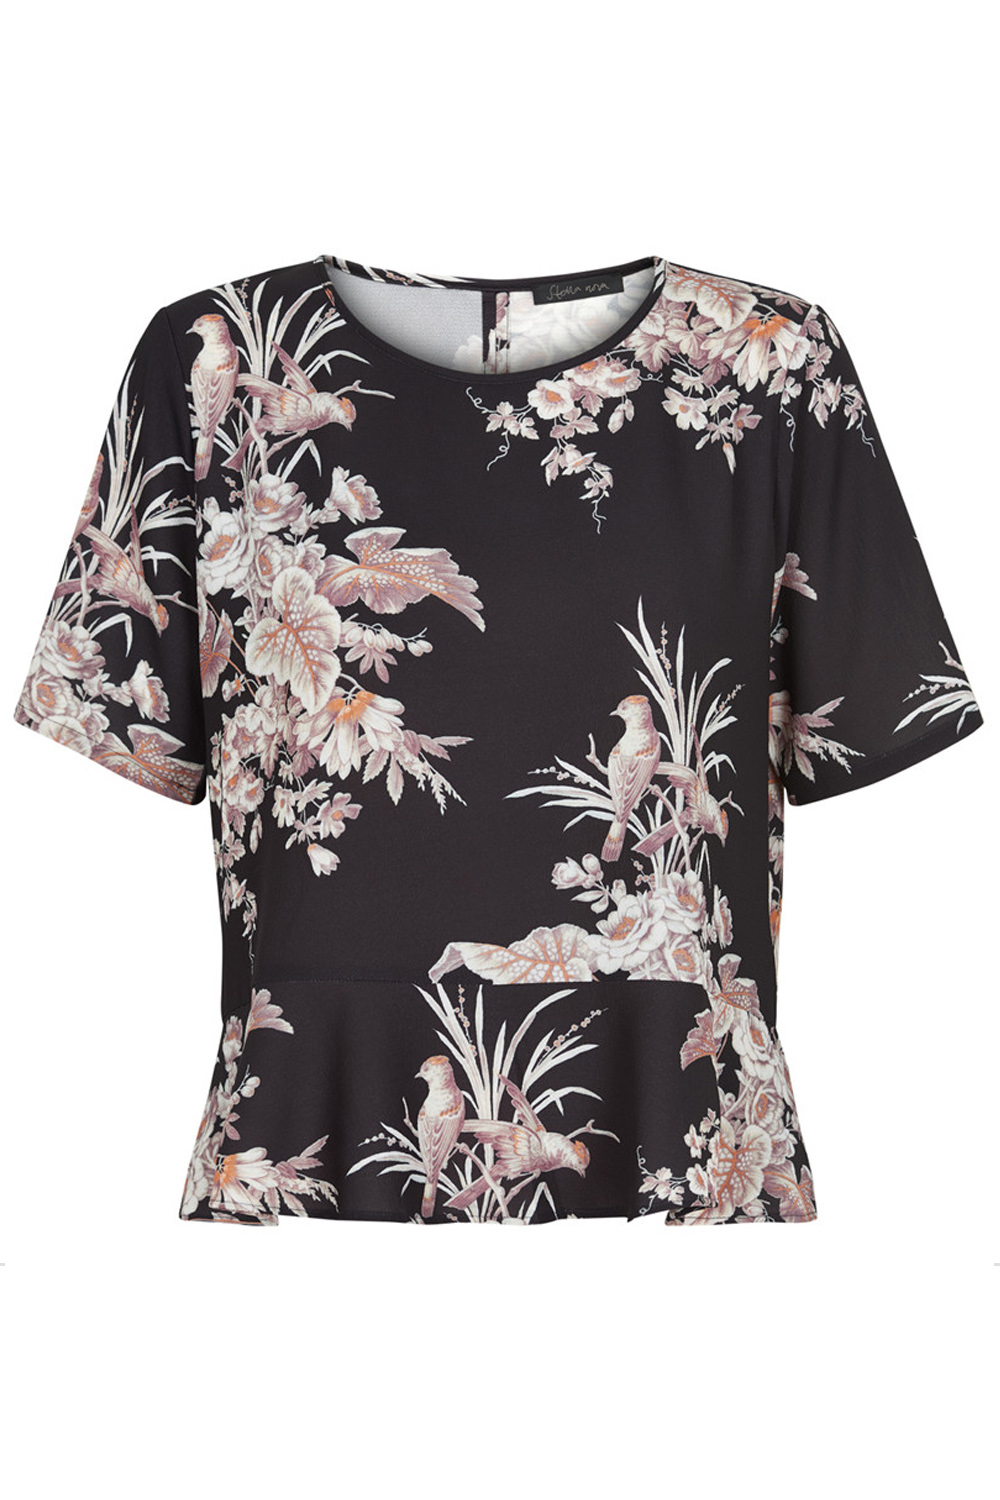 Stella Nova Bird Flower Blouse